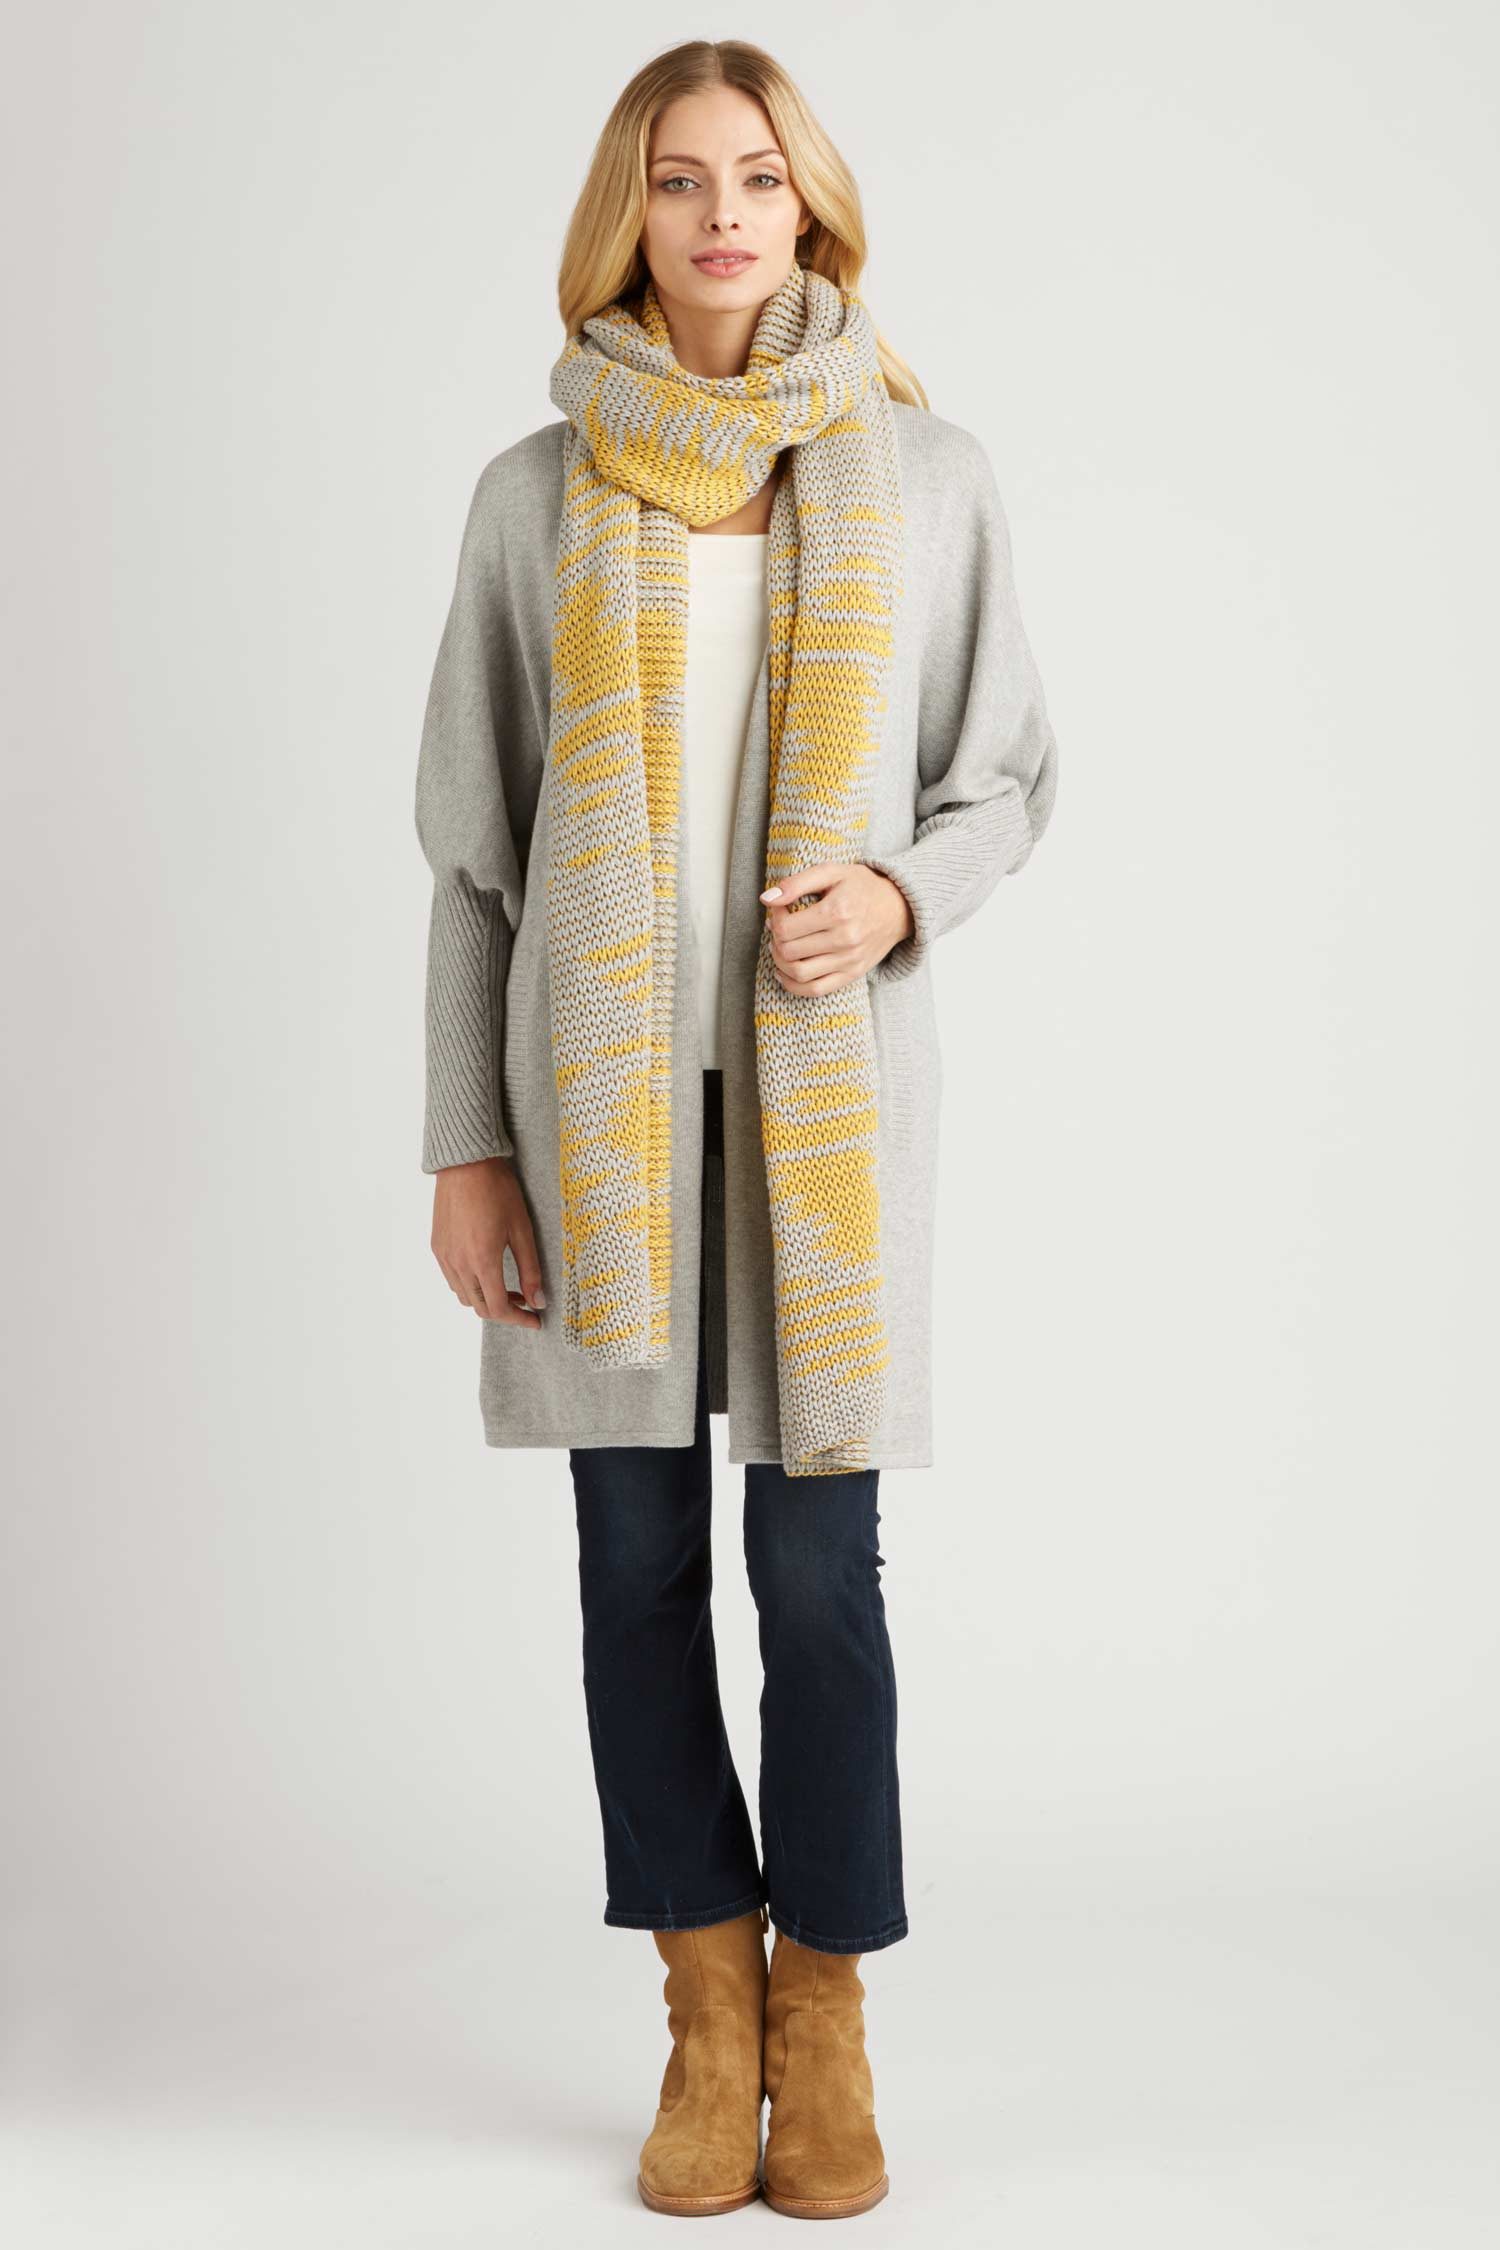 Womens Knit Wrap Scarf in Gray and Yellow | Fair Trade Gift